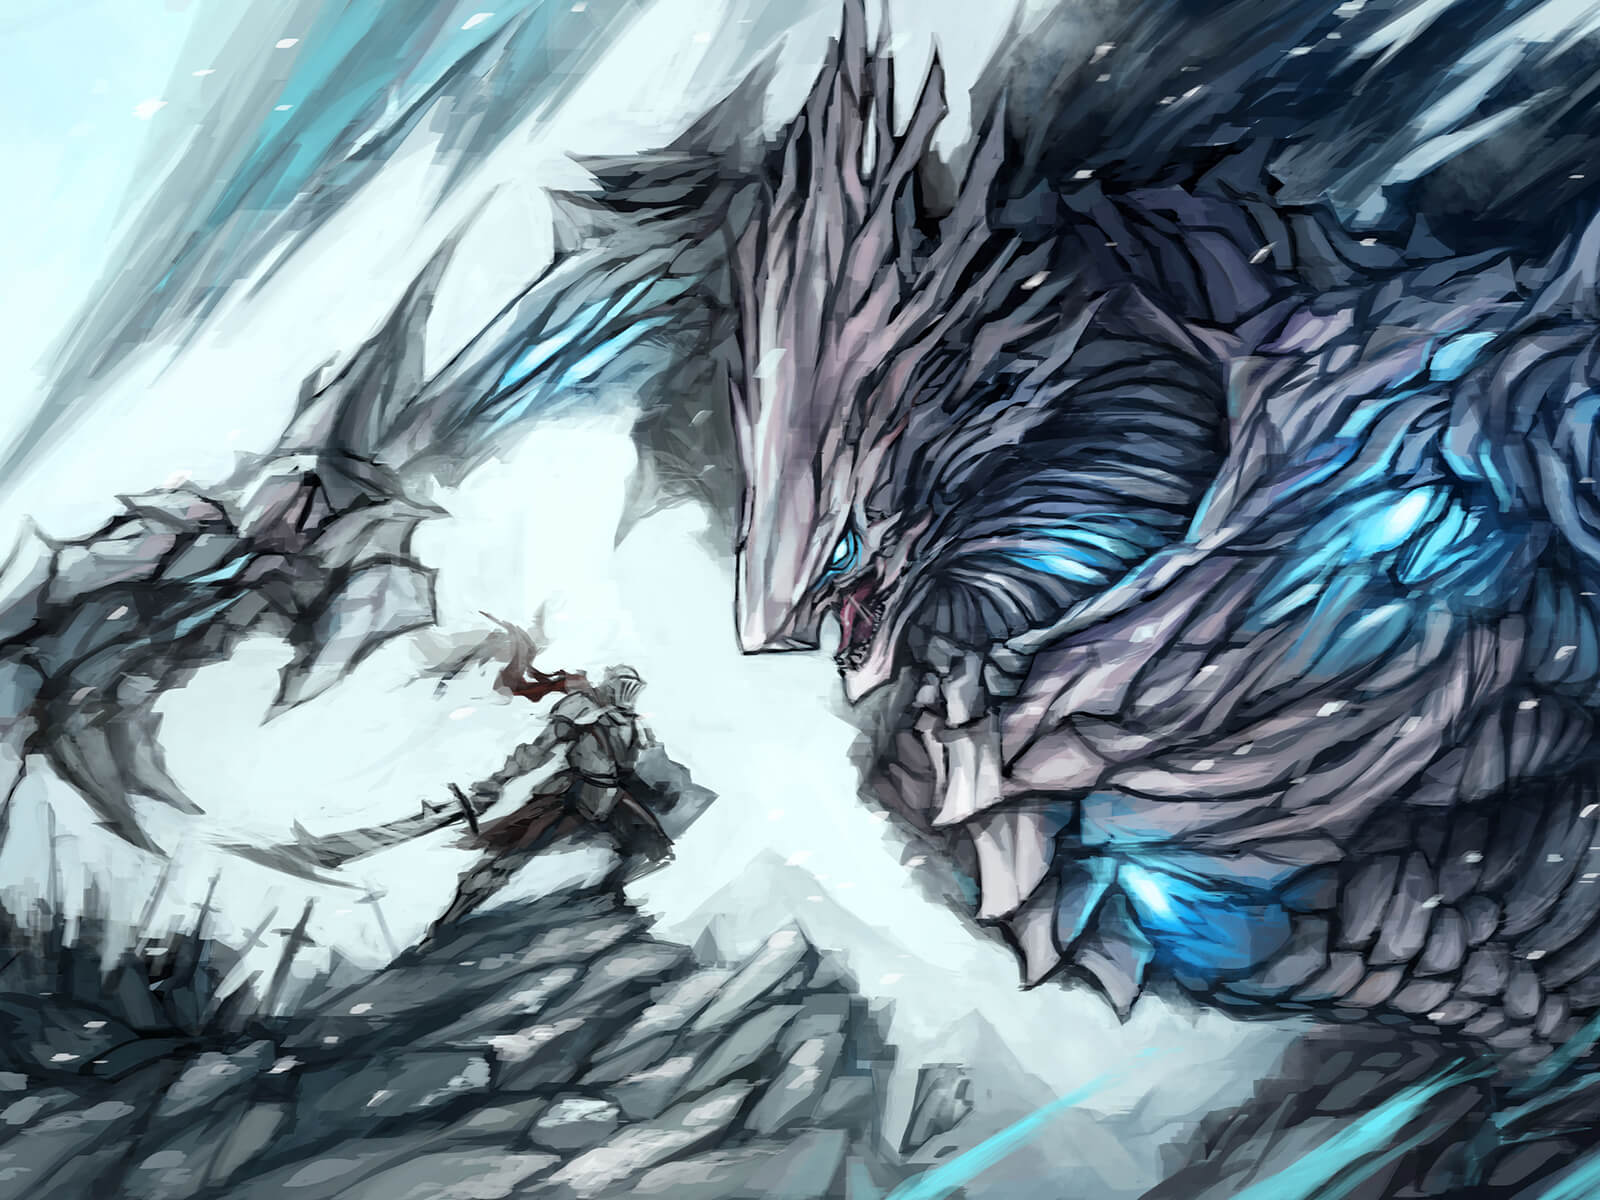 A knight with a sword and iron armor stands off against a gray, stone-faceted beast with glowing-blue points around its body.